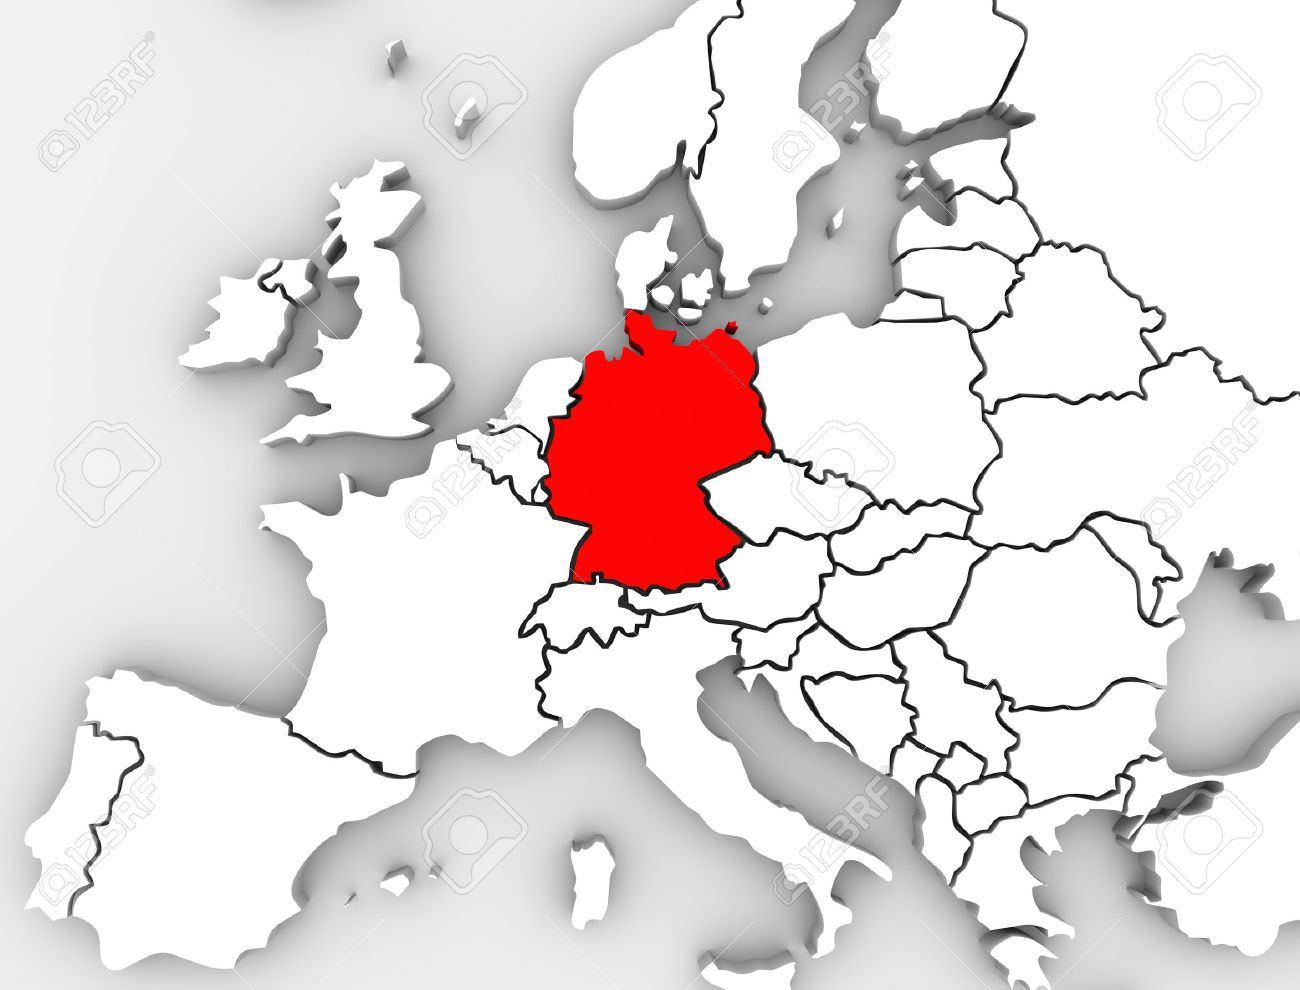 an abstract map of europe with the country of germany in red